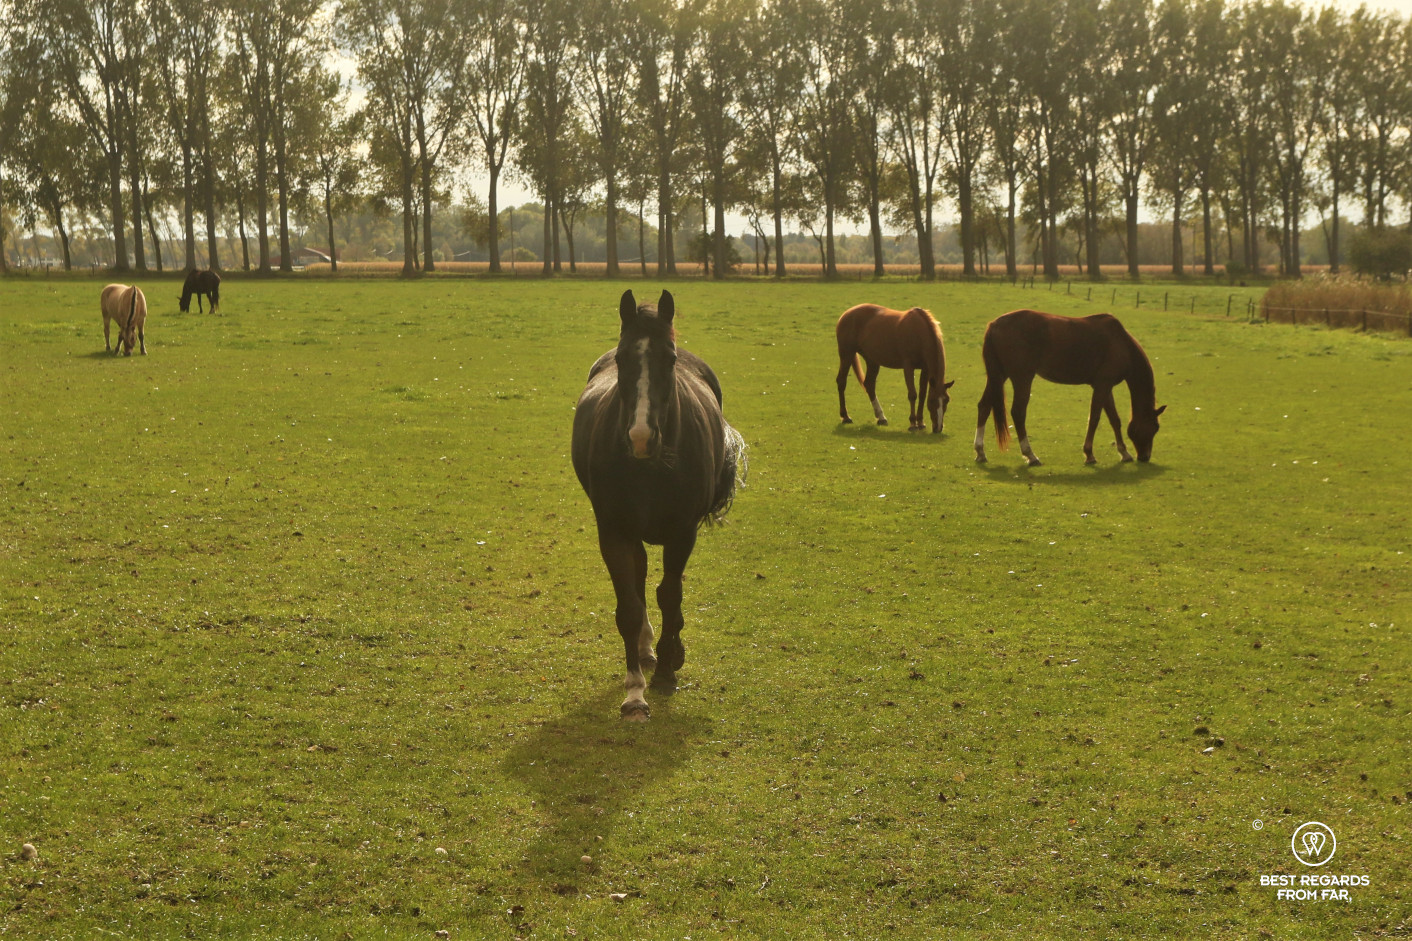 Biking to Damme from Bruges, passing by horses in fields, Belgium